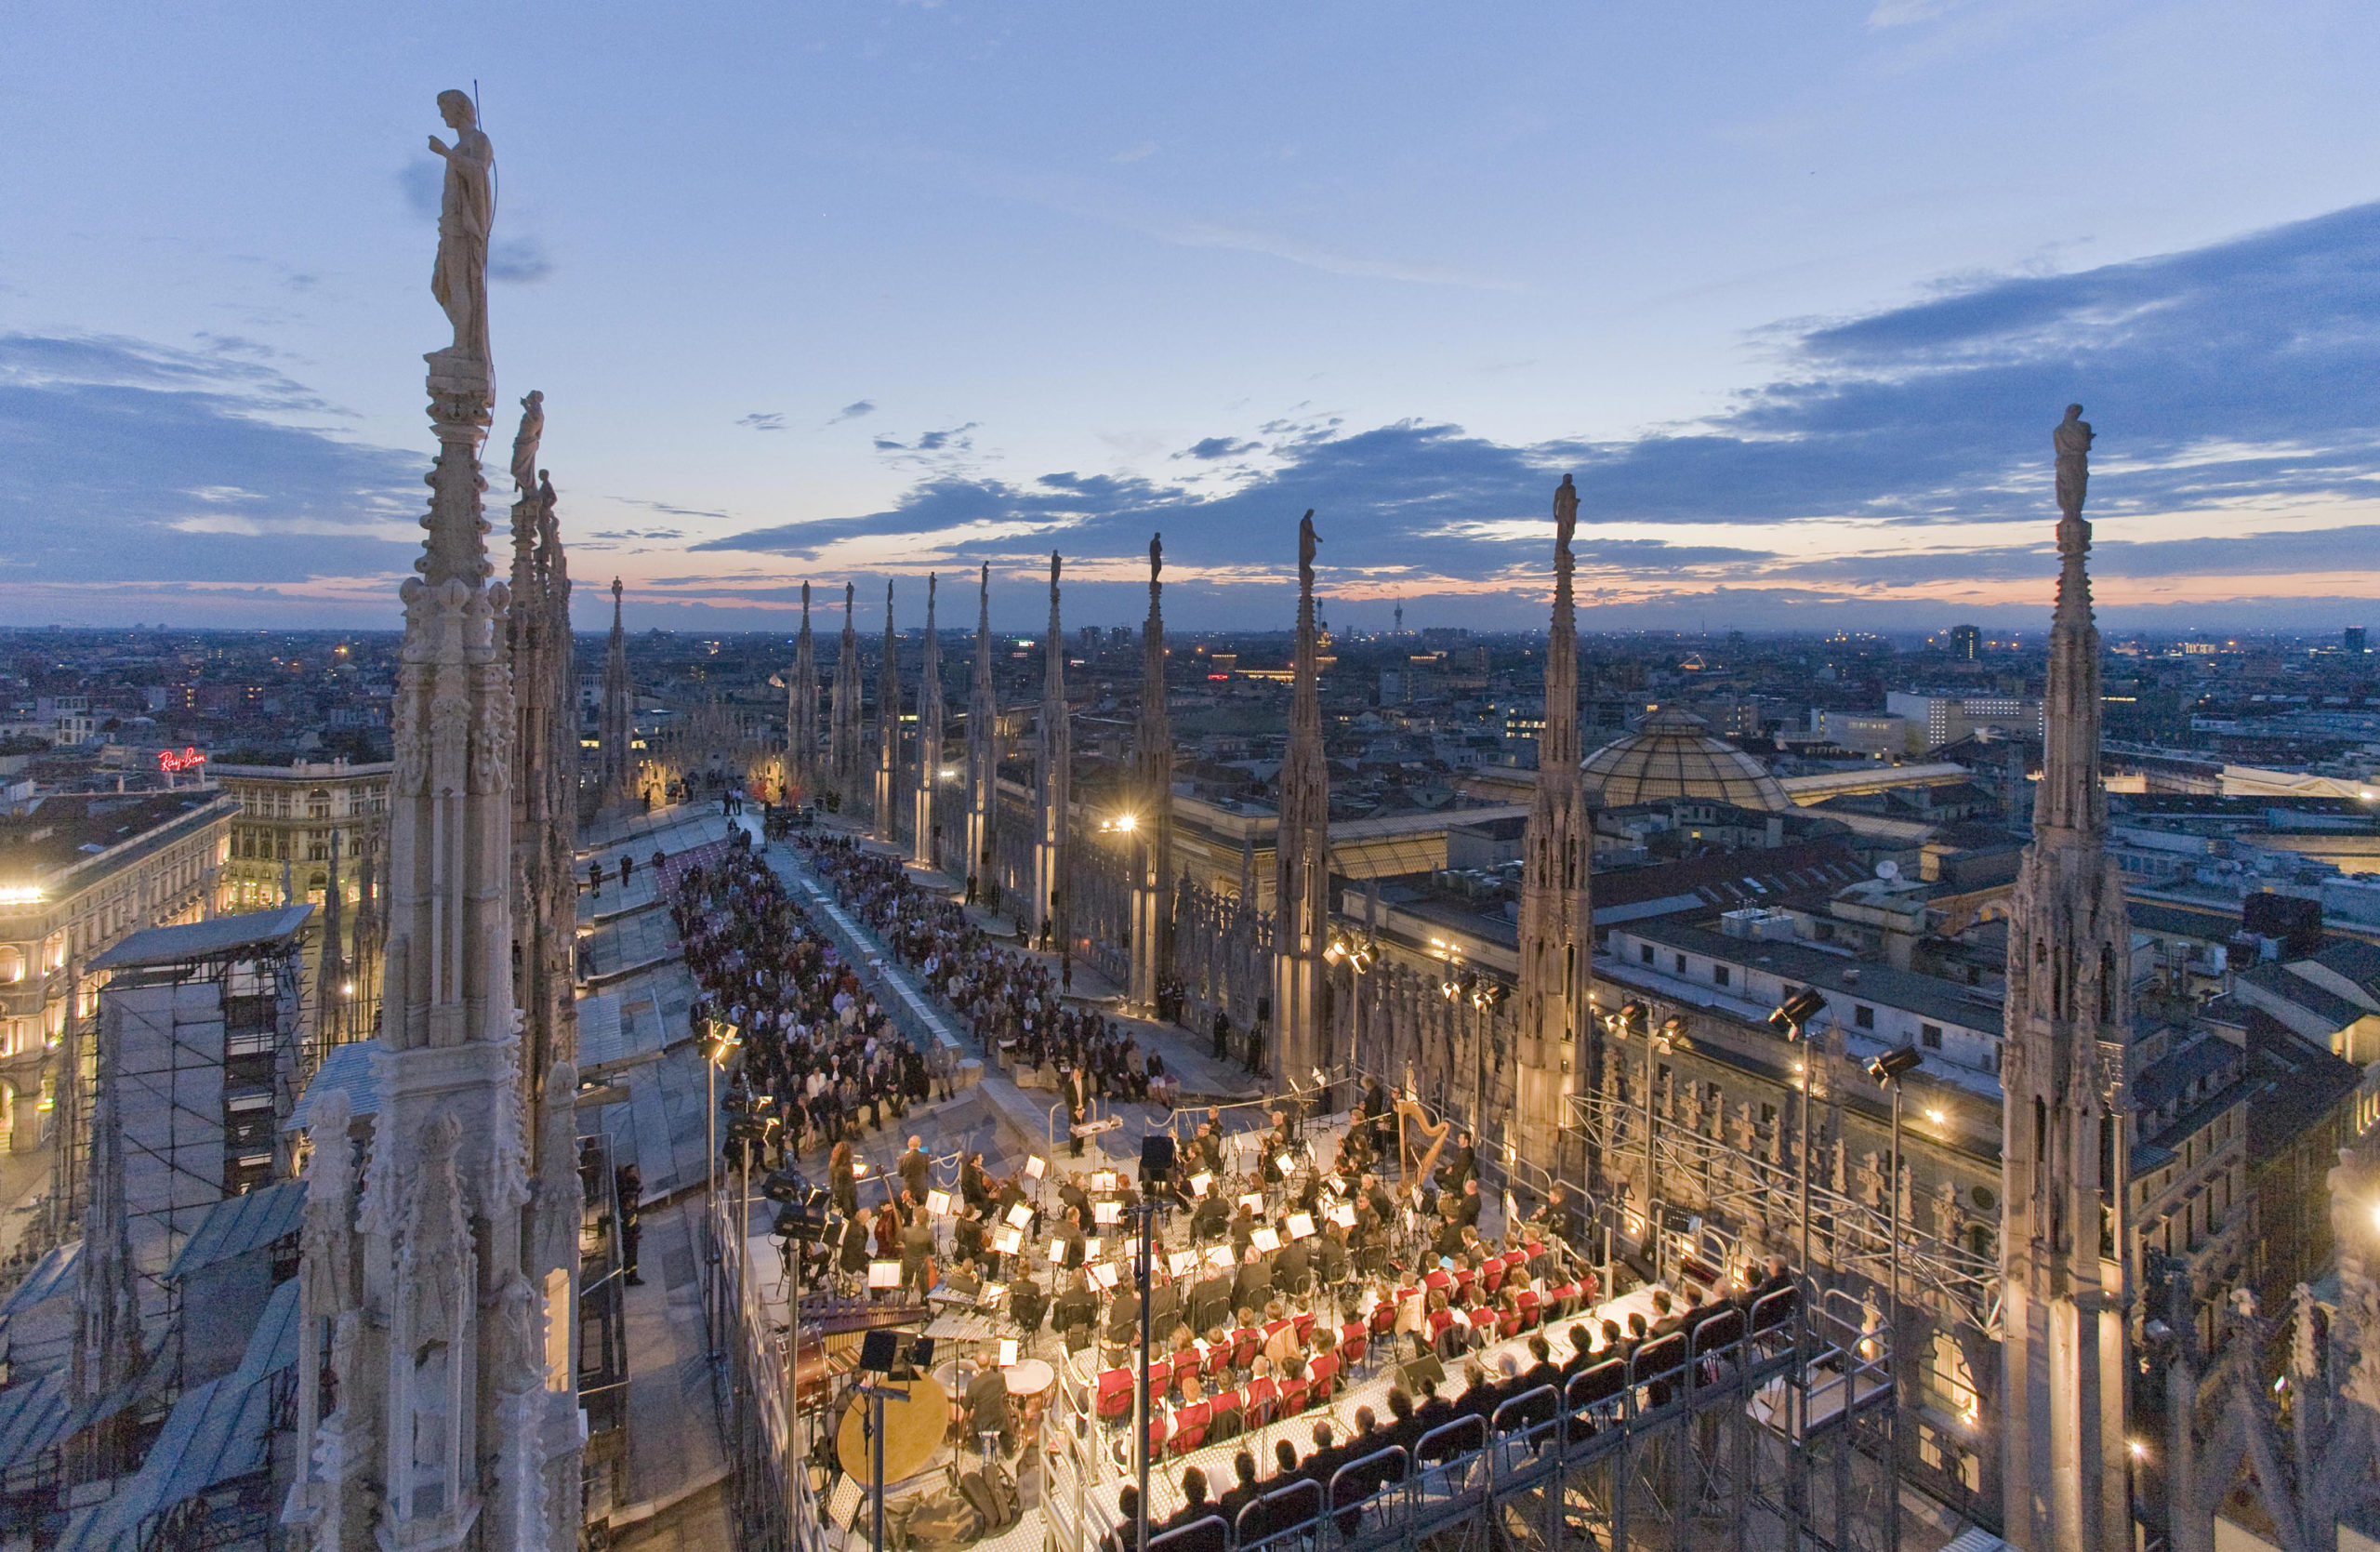 Fuorisalone 2019 Terrazza Duomo 21 Official Cocktail Party